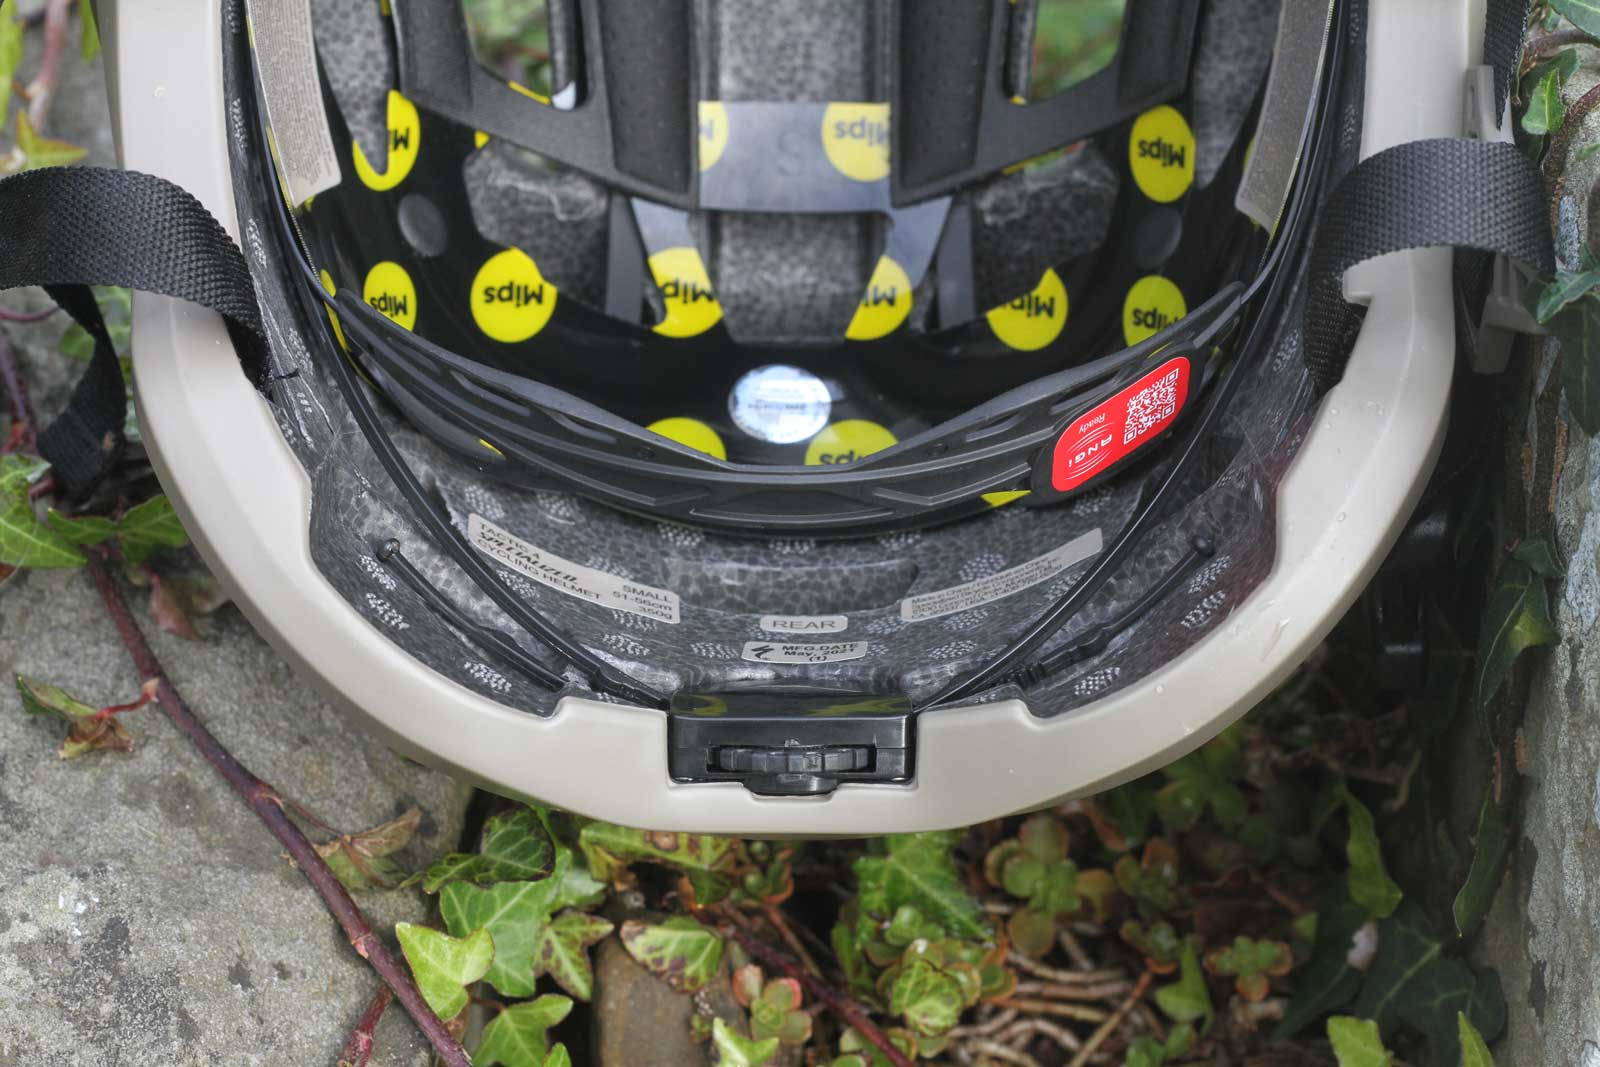 specialized tactic 4 helmet review rear fit adjustment